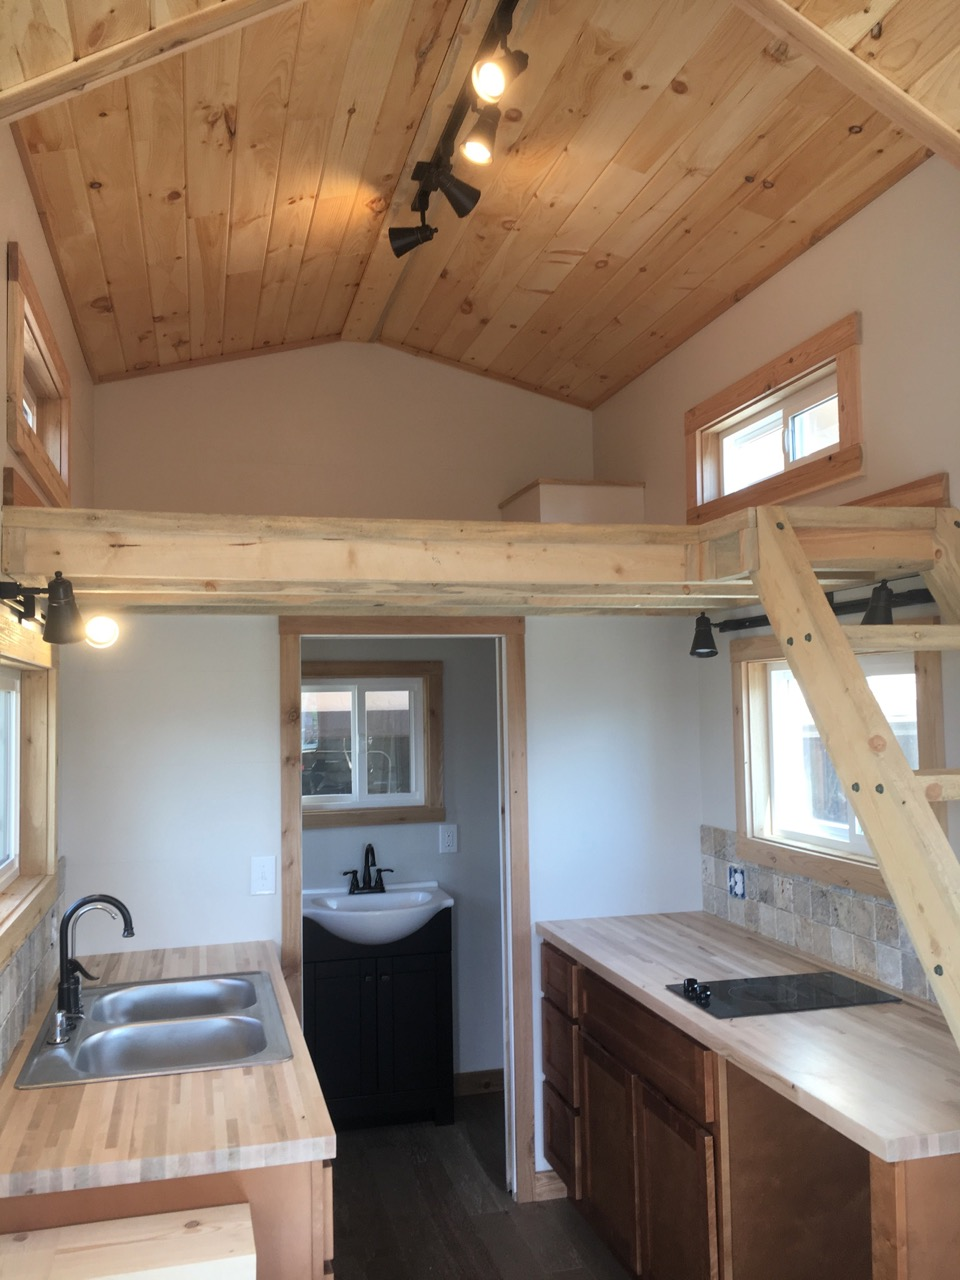 Wheelhouse-tiny-homes-23.jpg